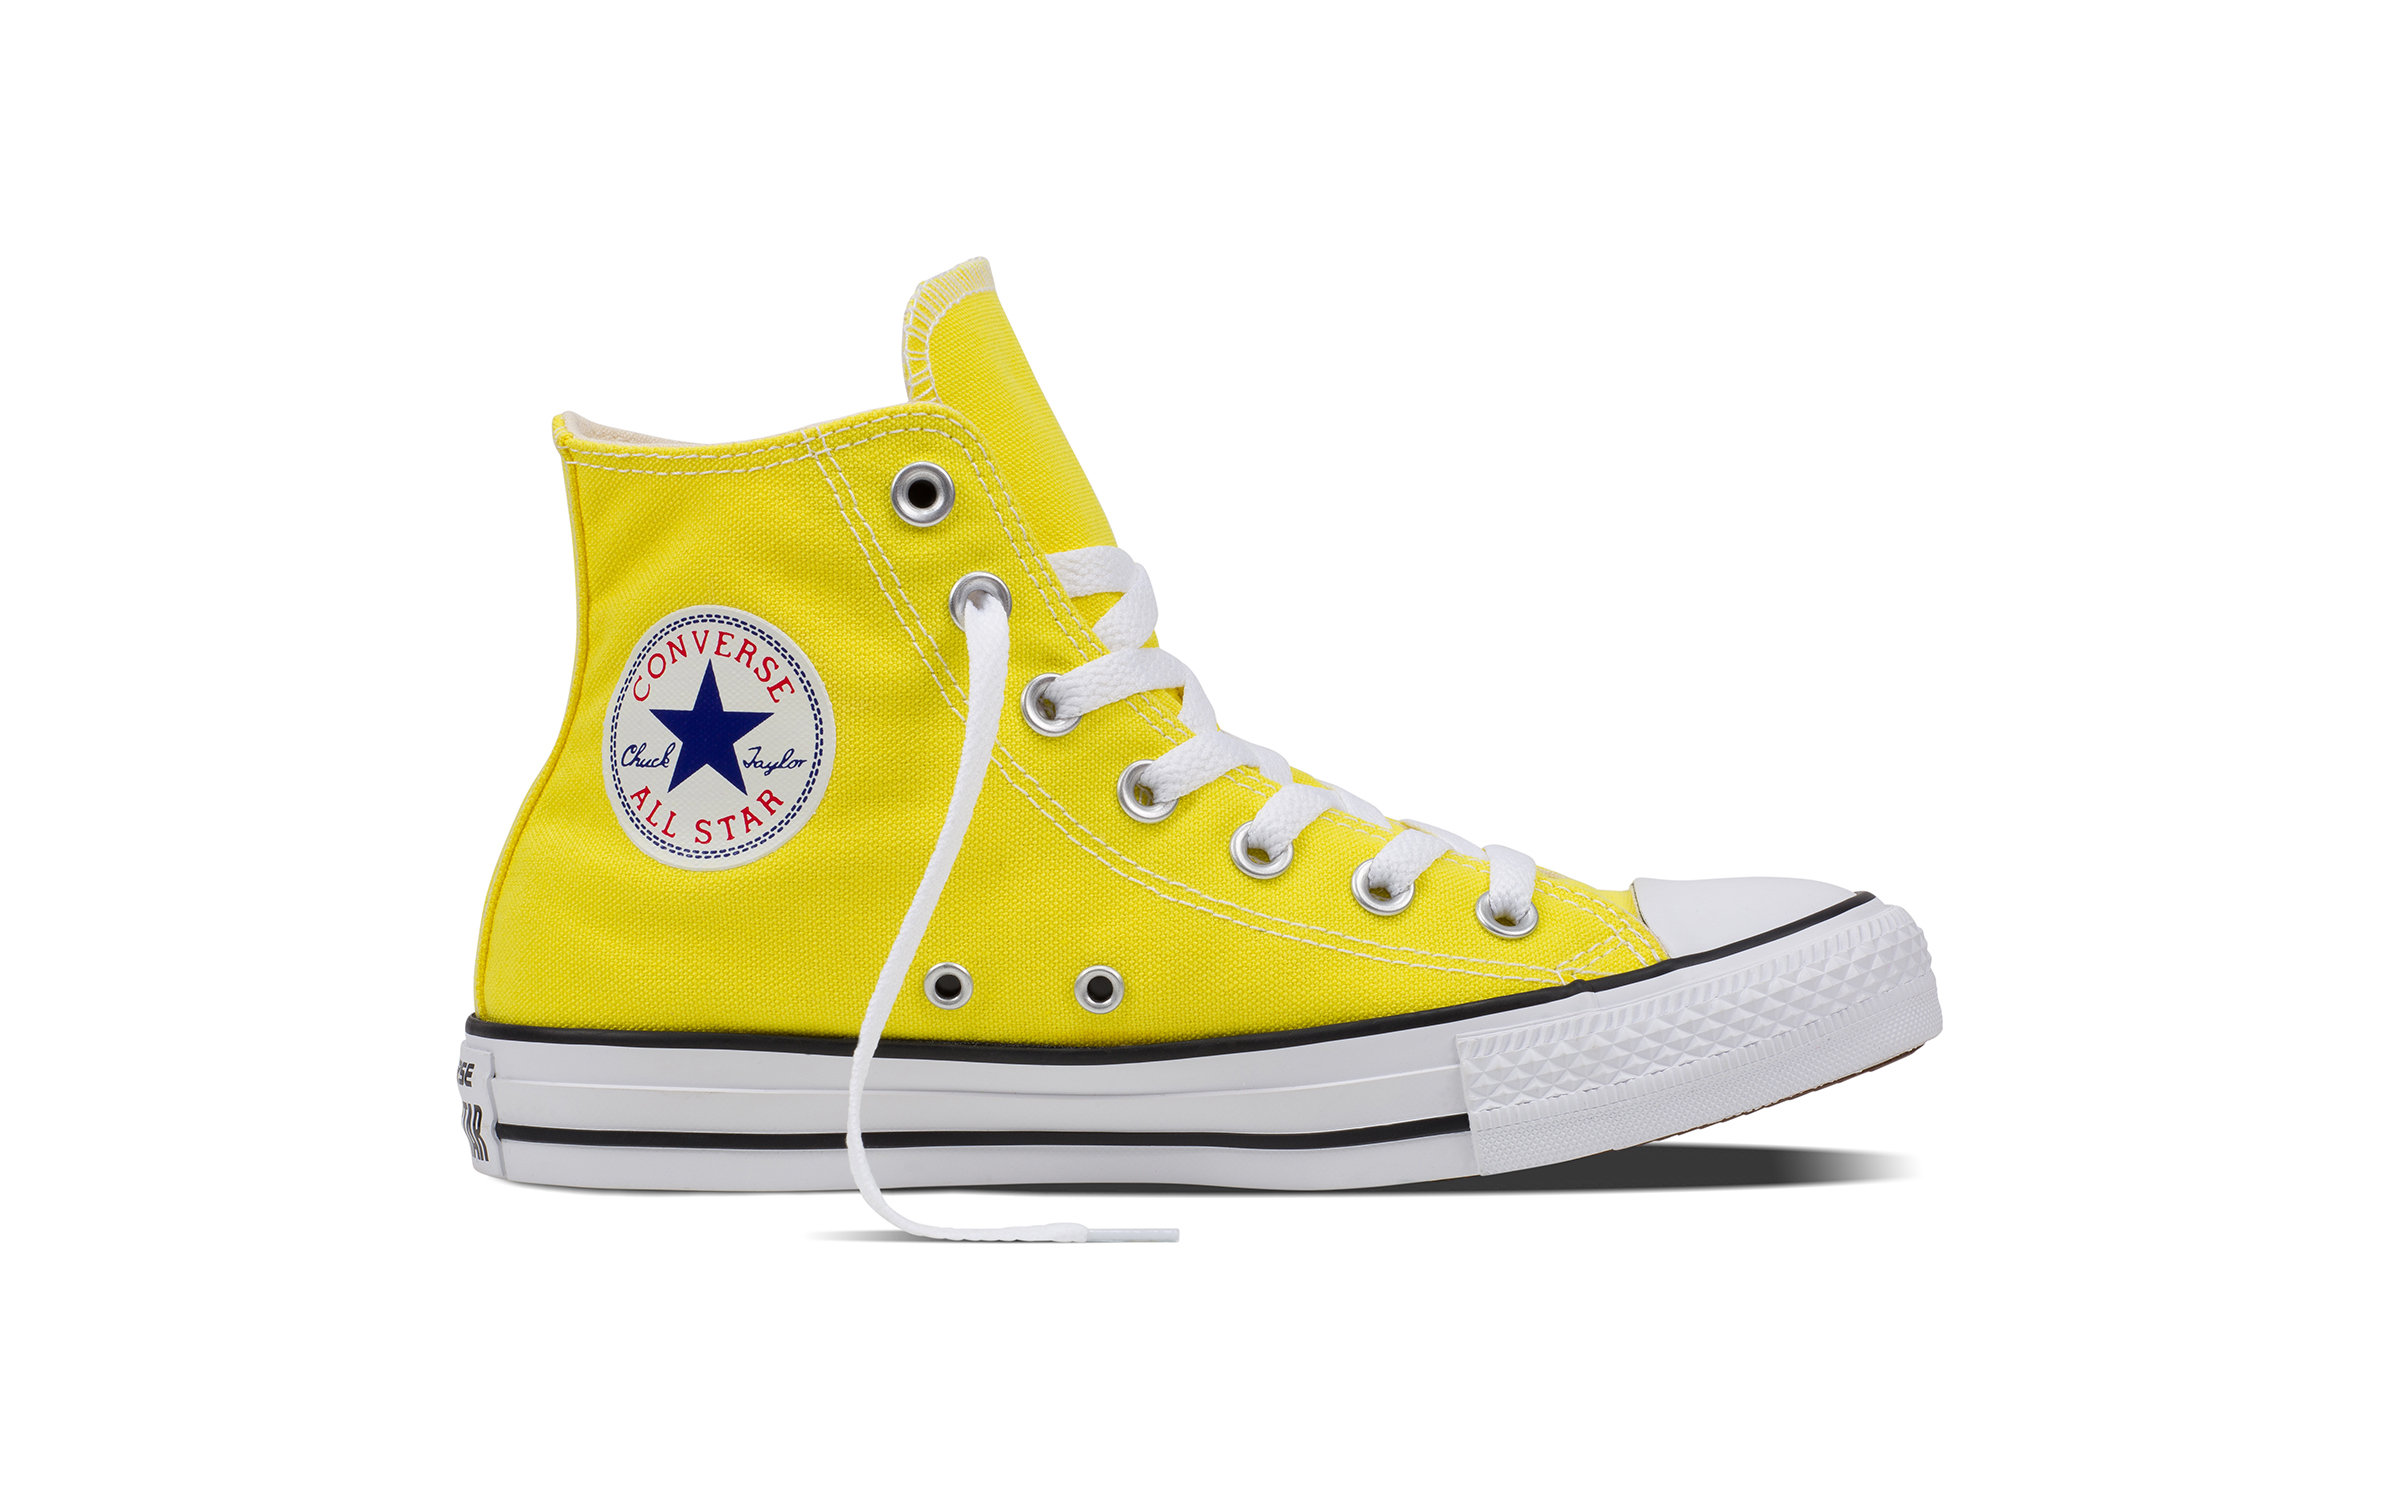 CHUCK TAYLOR ALL STAR HI FRESH YELLOW